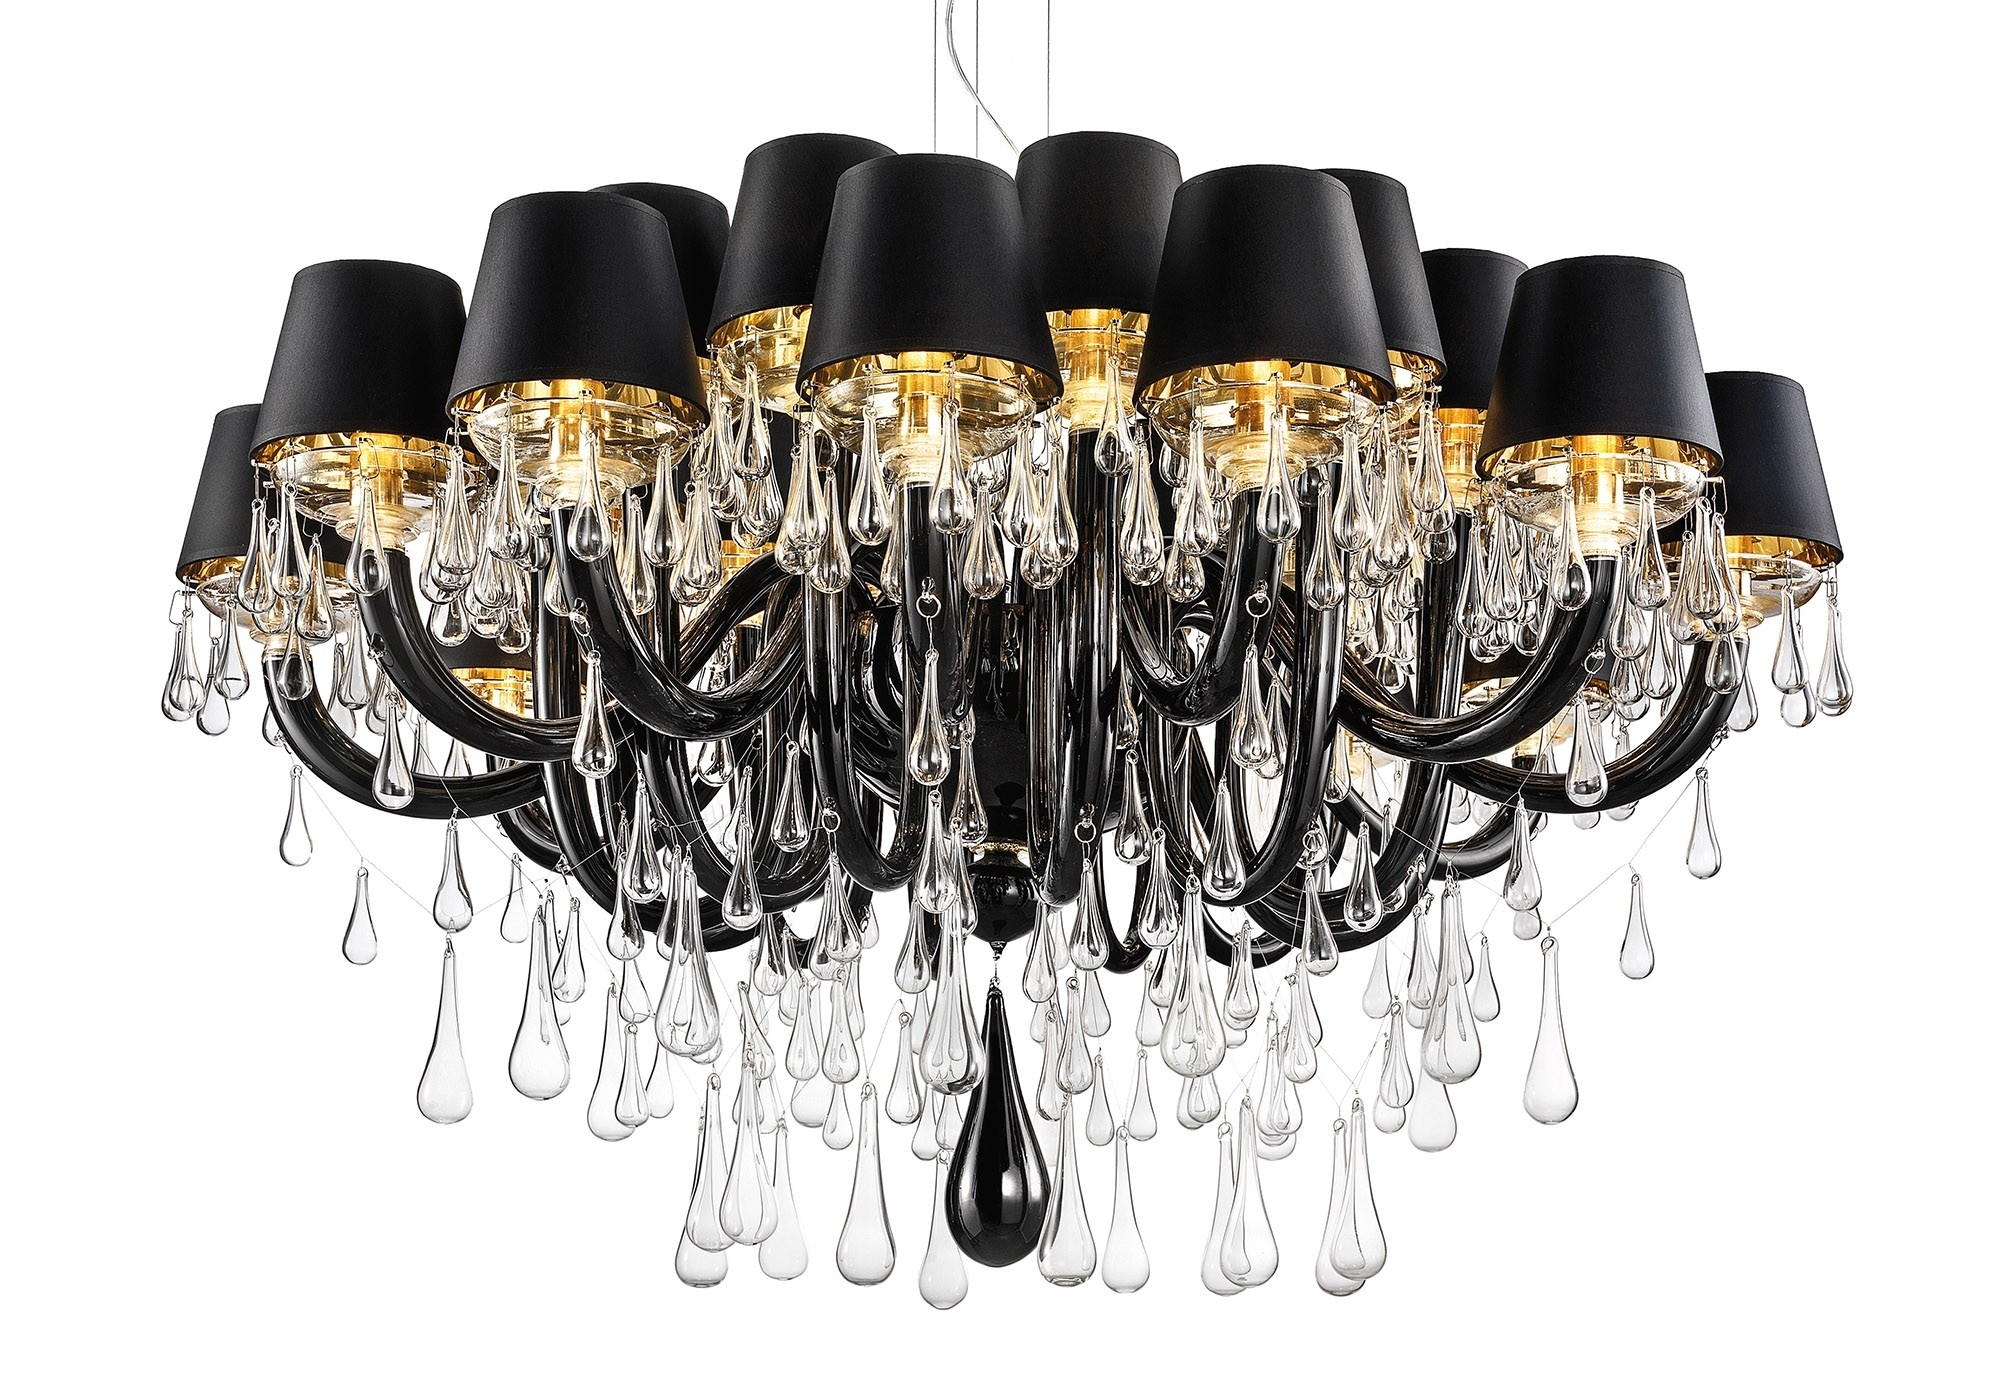 Modern Murano Chandelier Dmgouttes24K – Murano Lighting In Well Known Contemporary Black Chandelier (View 8 of 15)